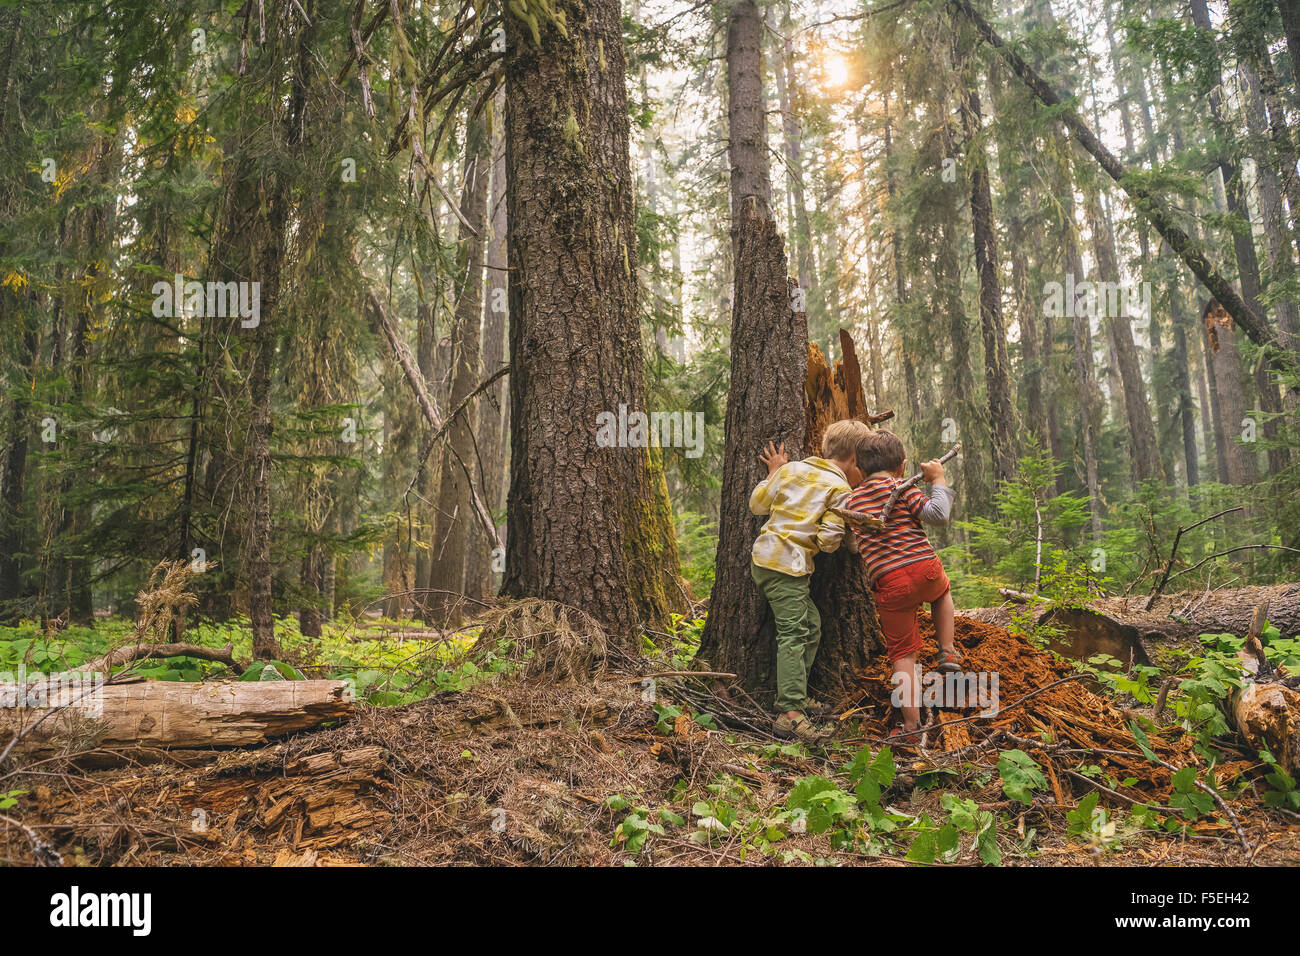 Two boys playing in the forest Stock Photo